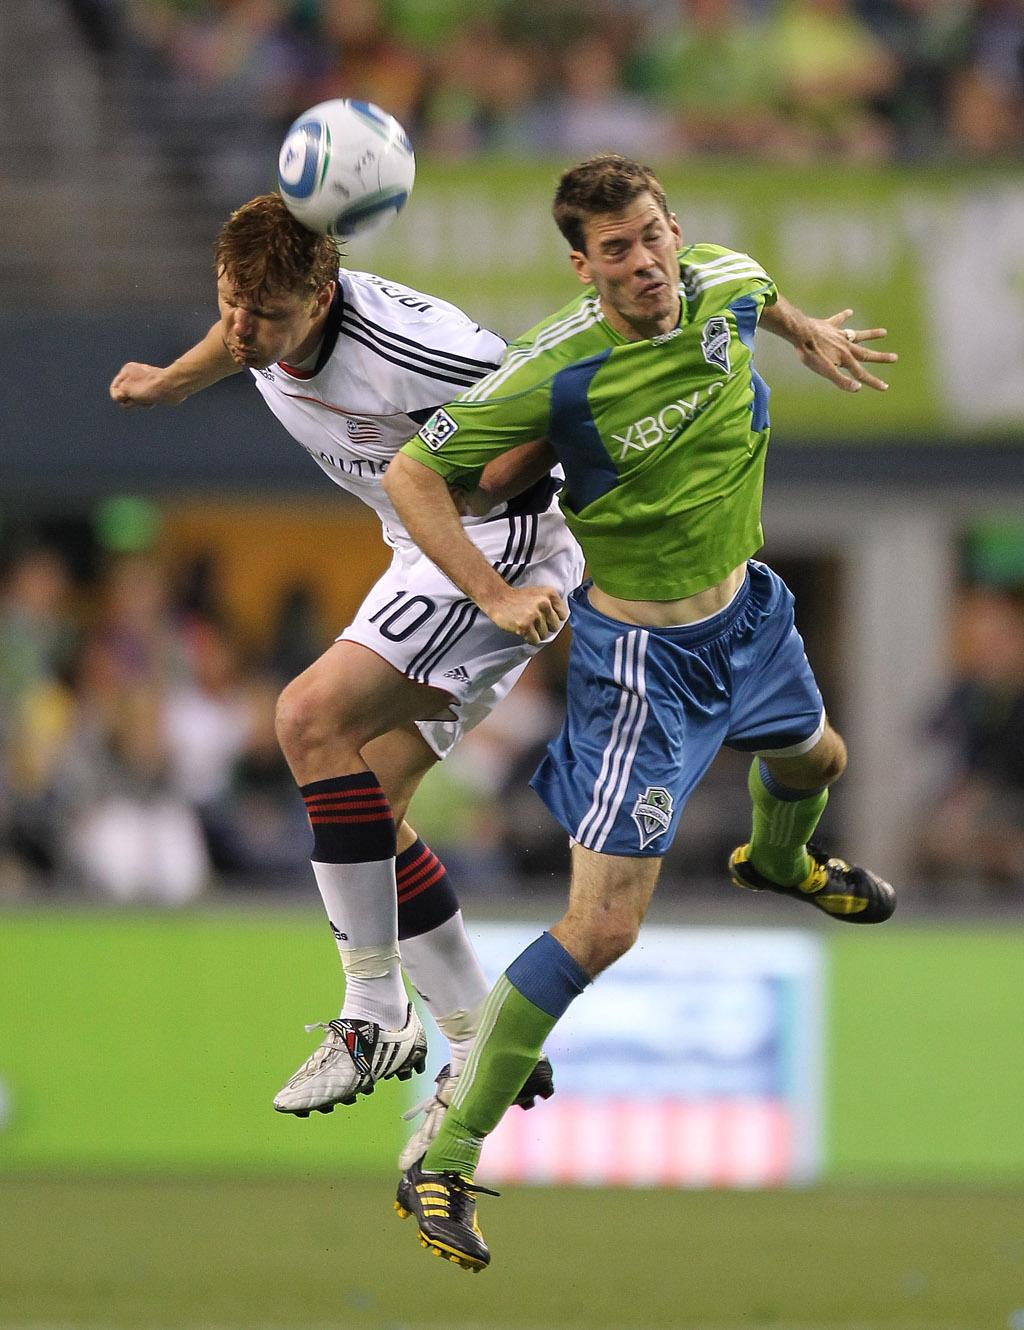 Sounders FC 3, Revolution 0